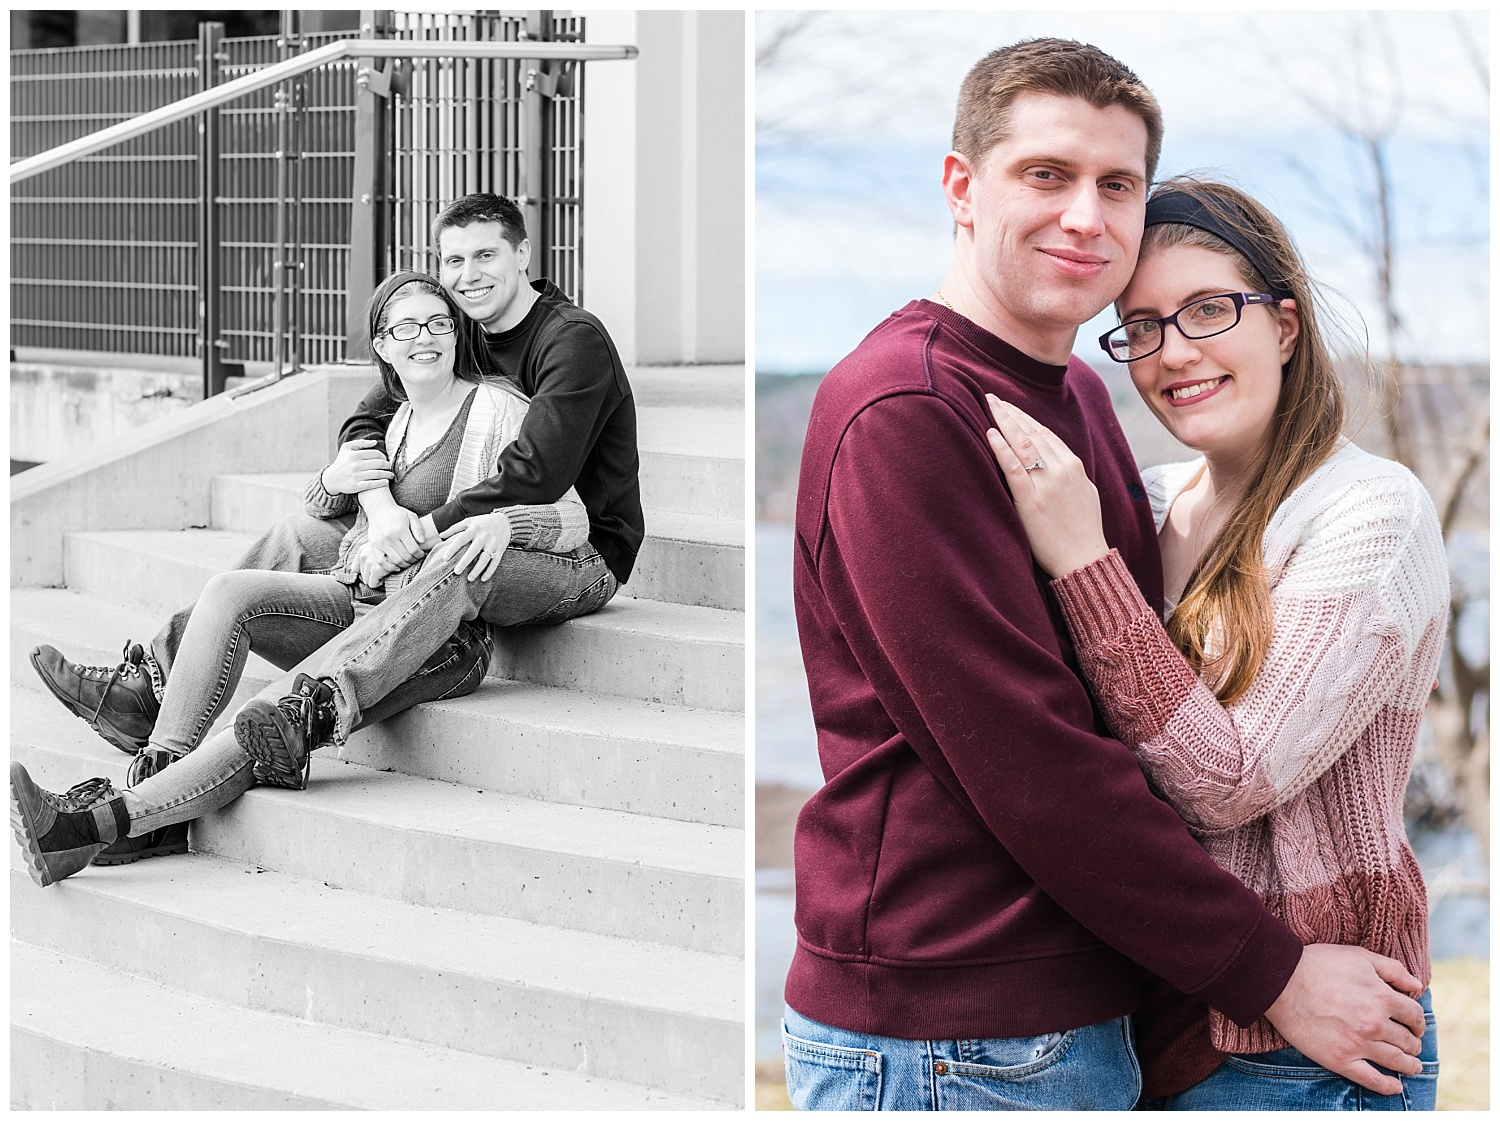 Michigan Tech Engagement Session in Houghton Michigan